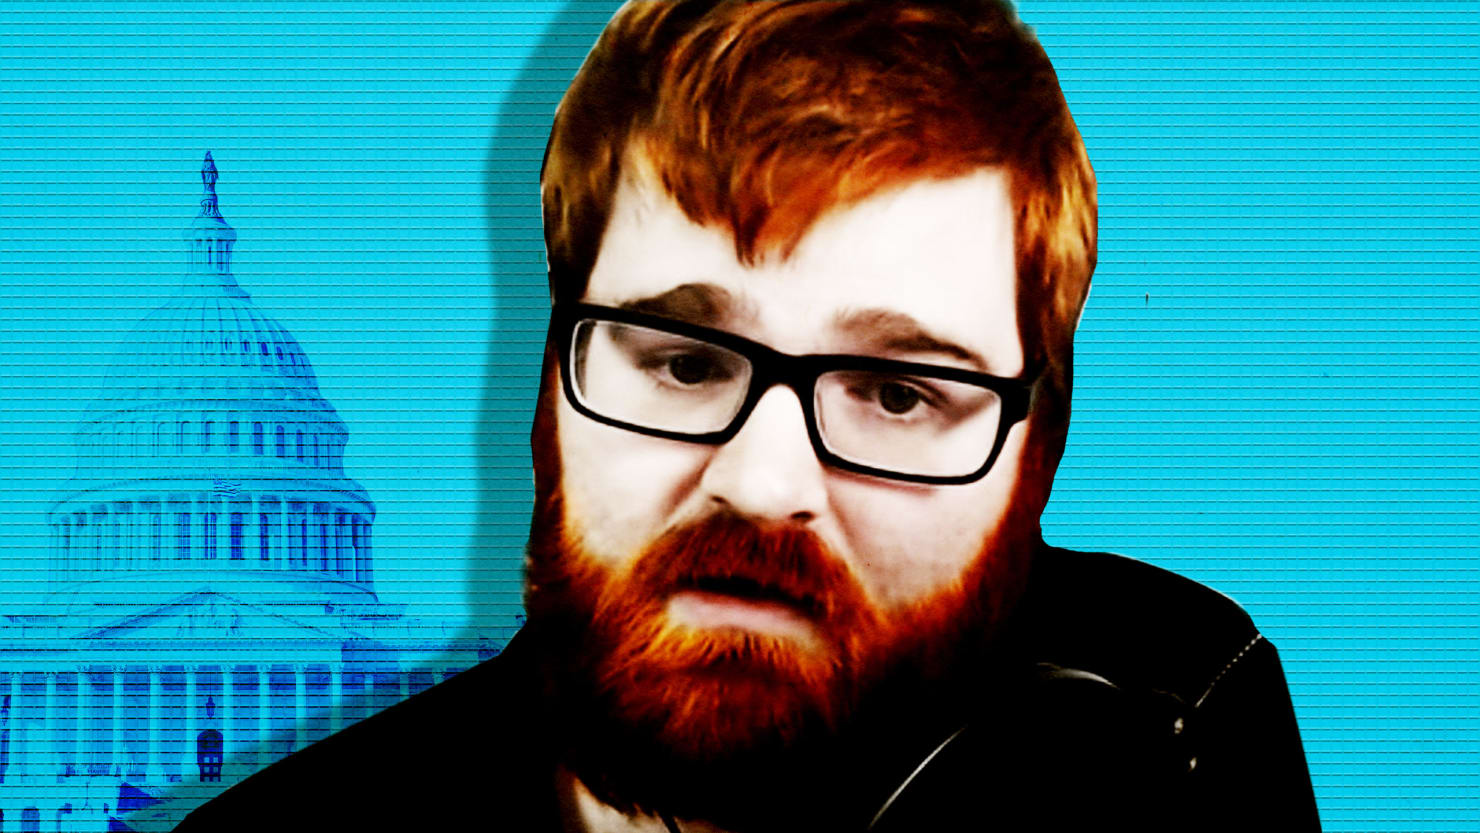 thedailybeast.com - Will Sommer - GOP Congressmen Meet With Holocaust-Denying Troll Chuck Johnson